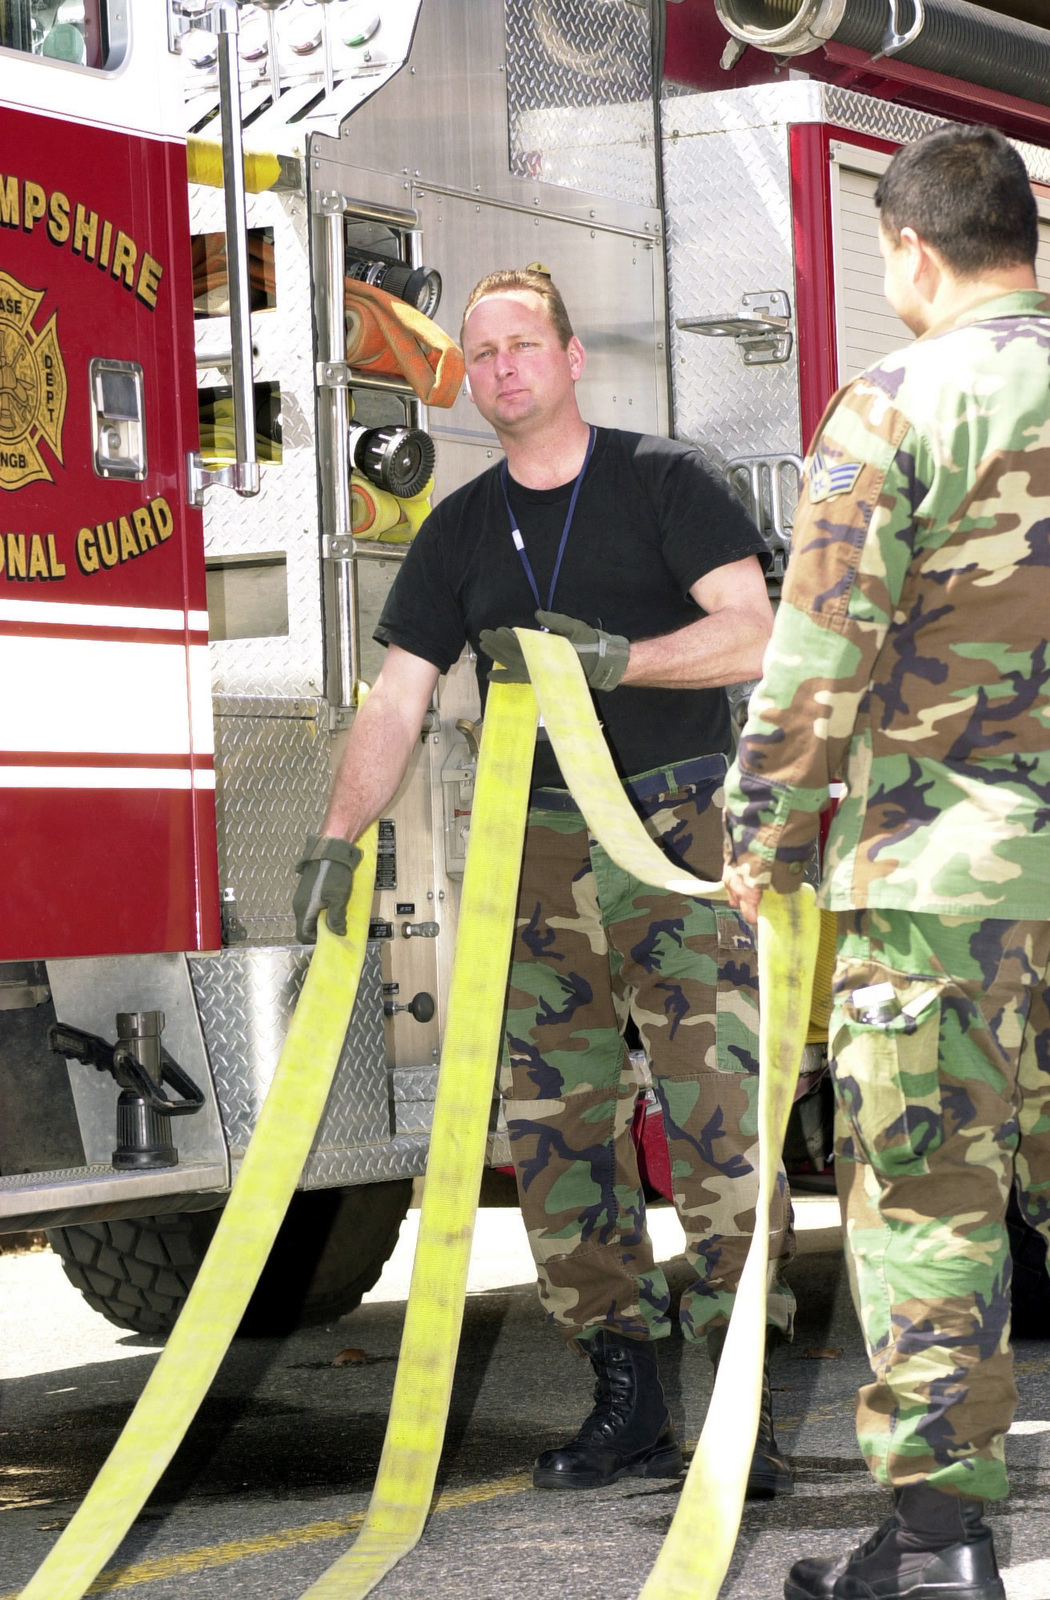 US Air Force (USAF) personnel assigned to the 157th Air Refueling Wing (ARW) Fire Department, New Hampshire (NH), Air National Guard (ANG) rewind fire hose onto the truck, during a training exercise conducted at Pease Air National Guard Base (ANGB), NH